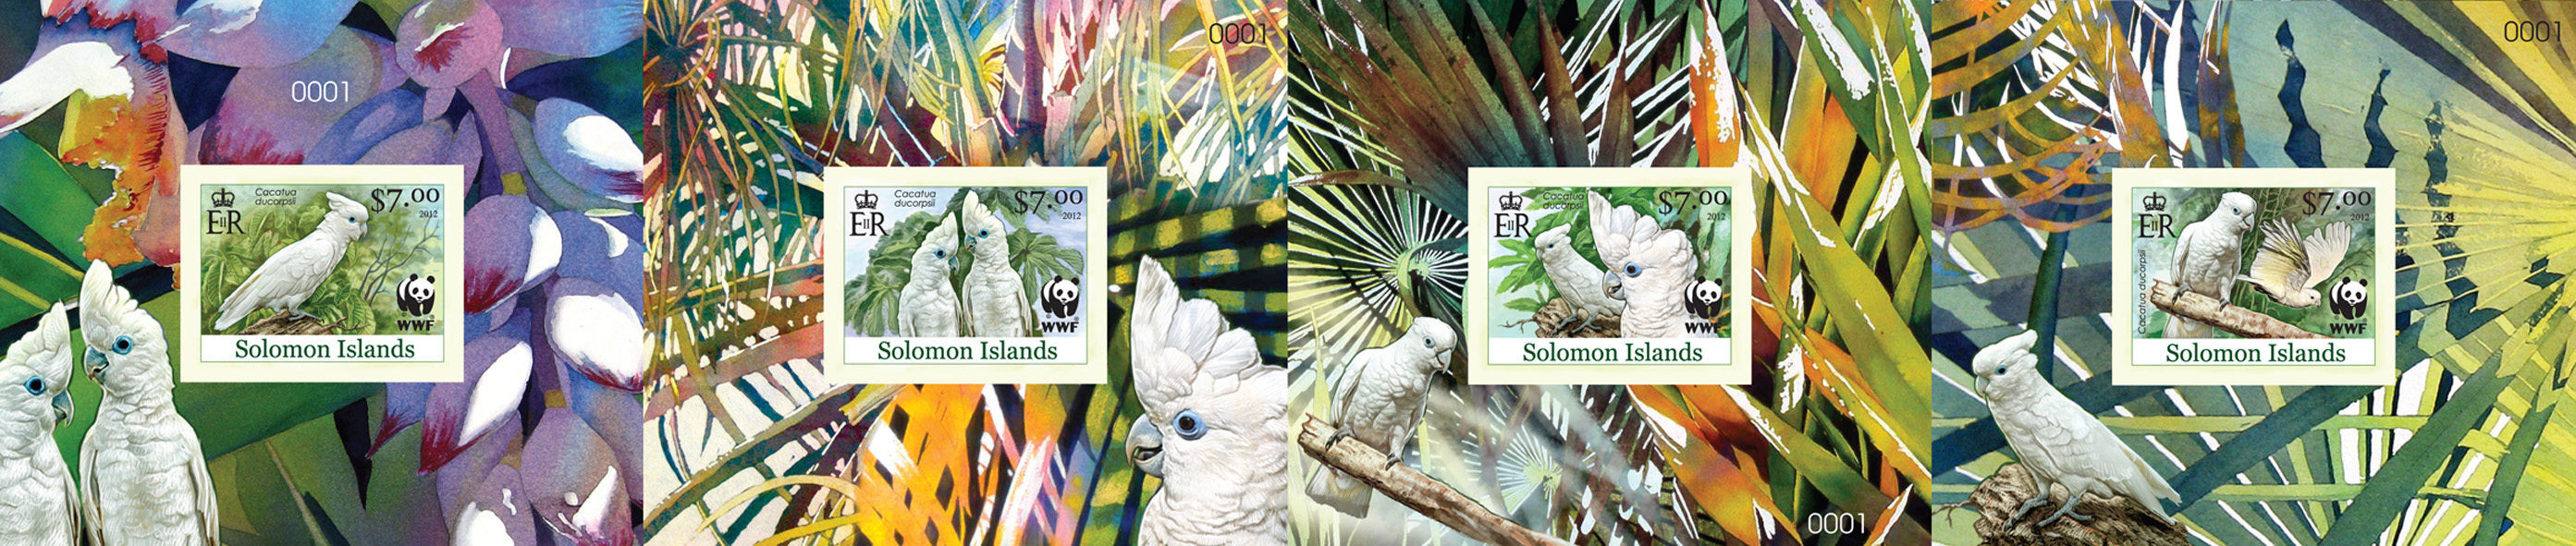 WWF – White Cokatoo - Issue of Solomon islands postage stamps